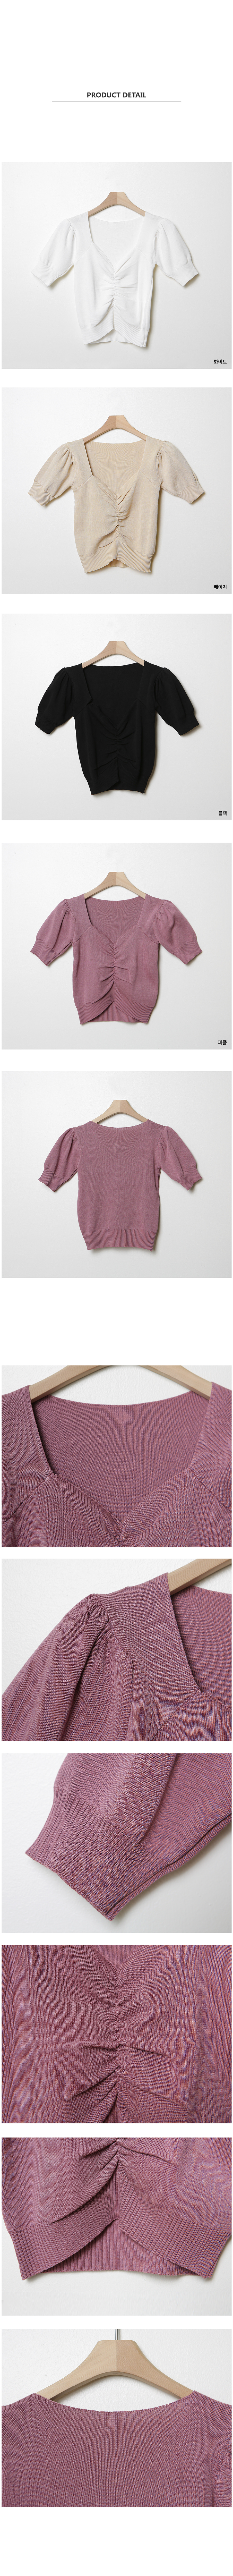 Heart Square Neck Slim Fit Shirred T-shirt Knitwear T#YW759